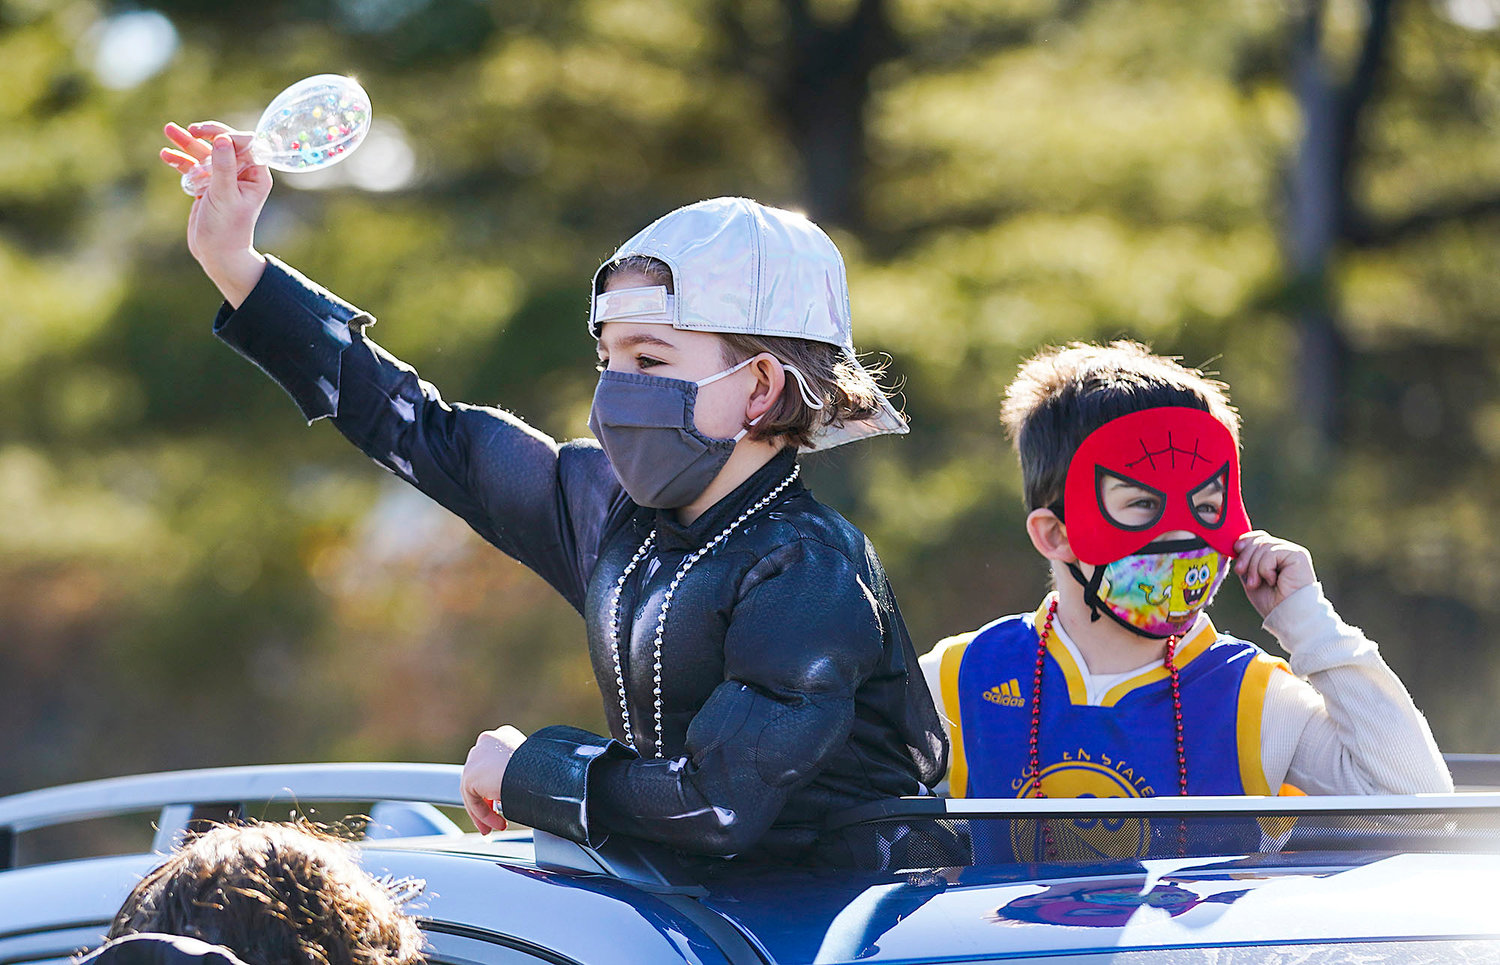 Micah Bogad, 9, left, and Noah Holt, 6, right, both of Providence, poke through the sun roof with a mask and a maraca they received at the event.